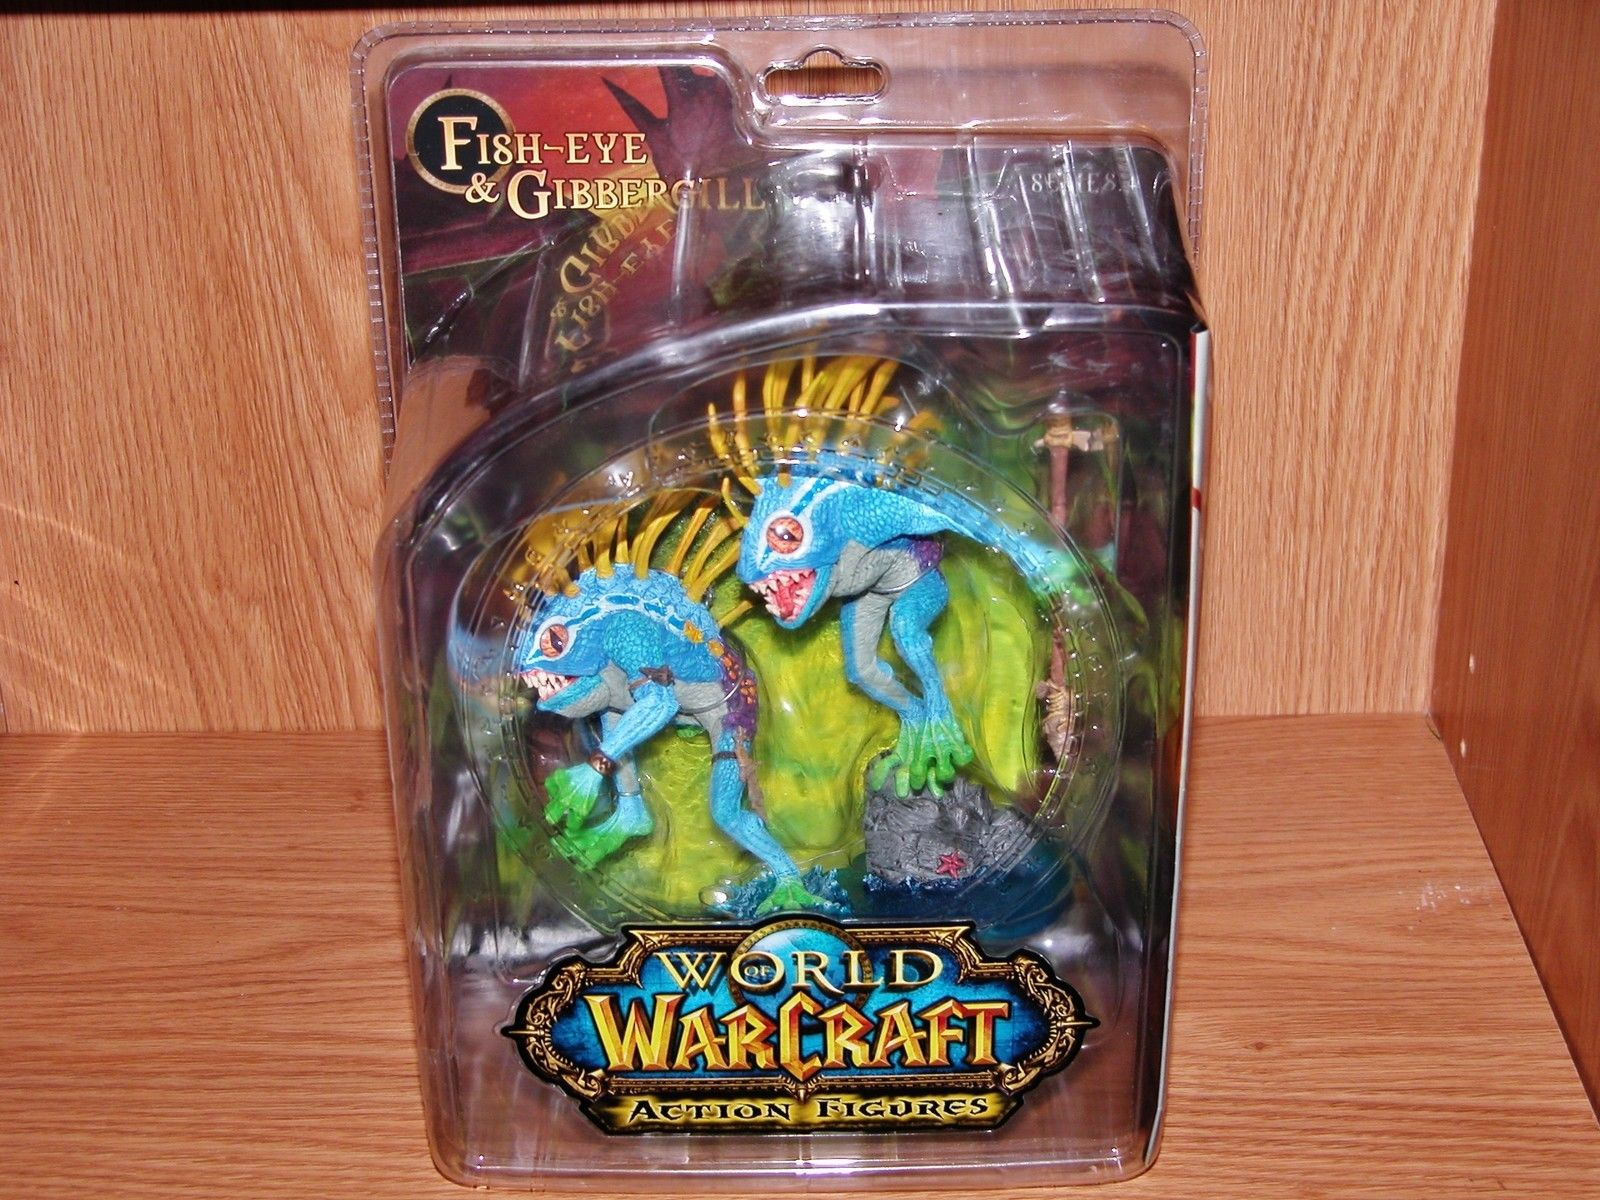 World of Series 4: Murloc Action Figure 2-Pack: Fish-eye and Gibbergill фигурка planet of the apes action figure classic gorilla soldier 2 pack 18 см